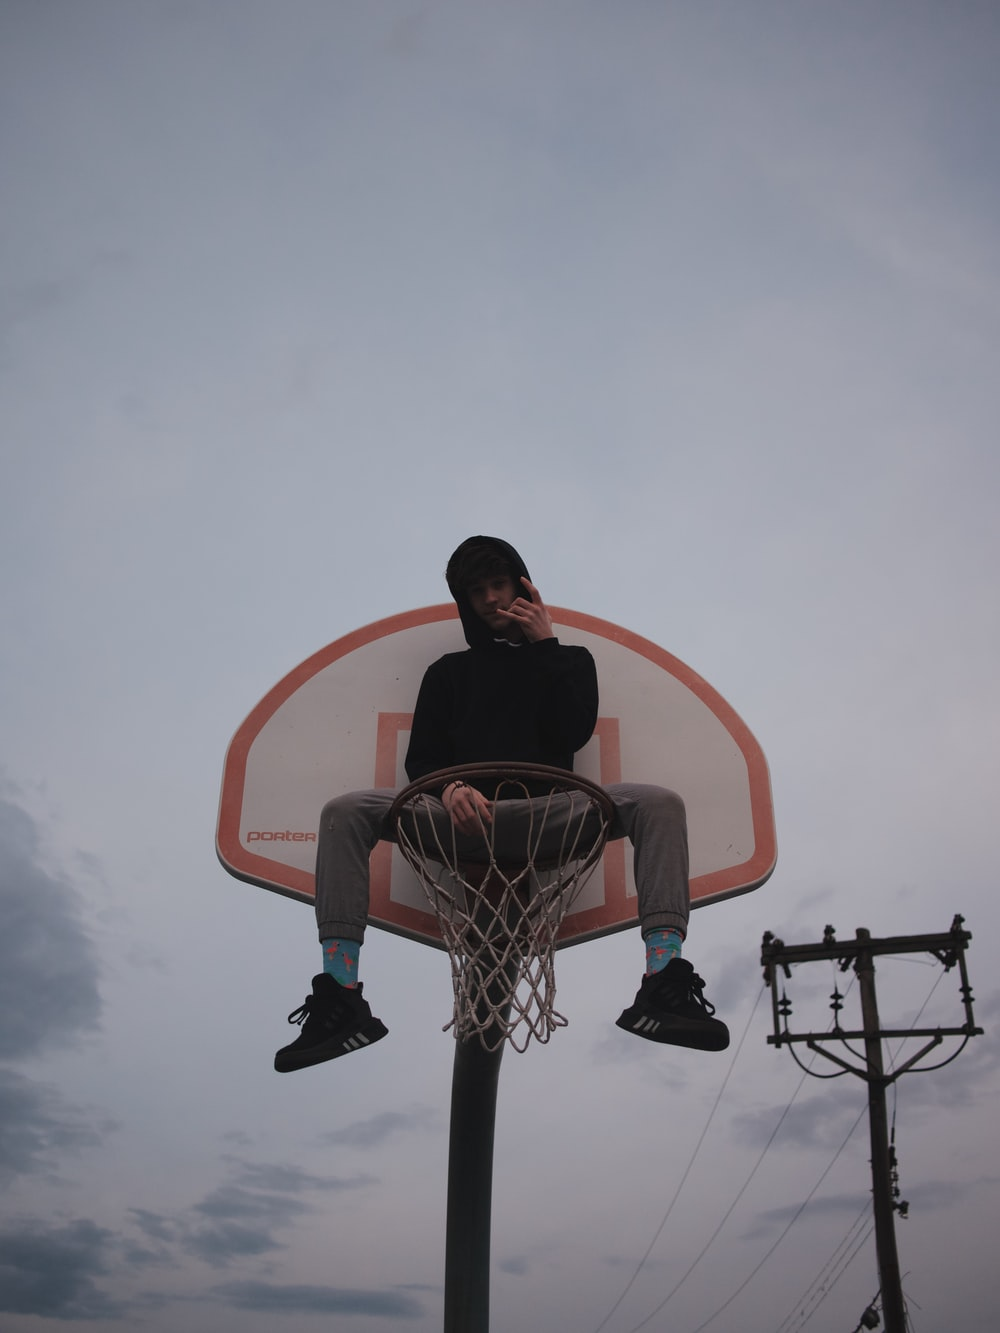 man sitting on red and white basketball hoop